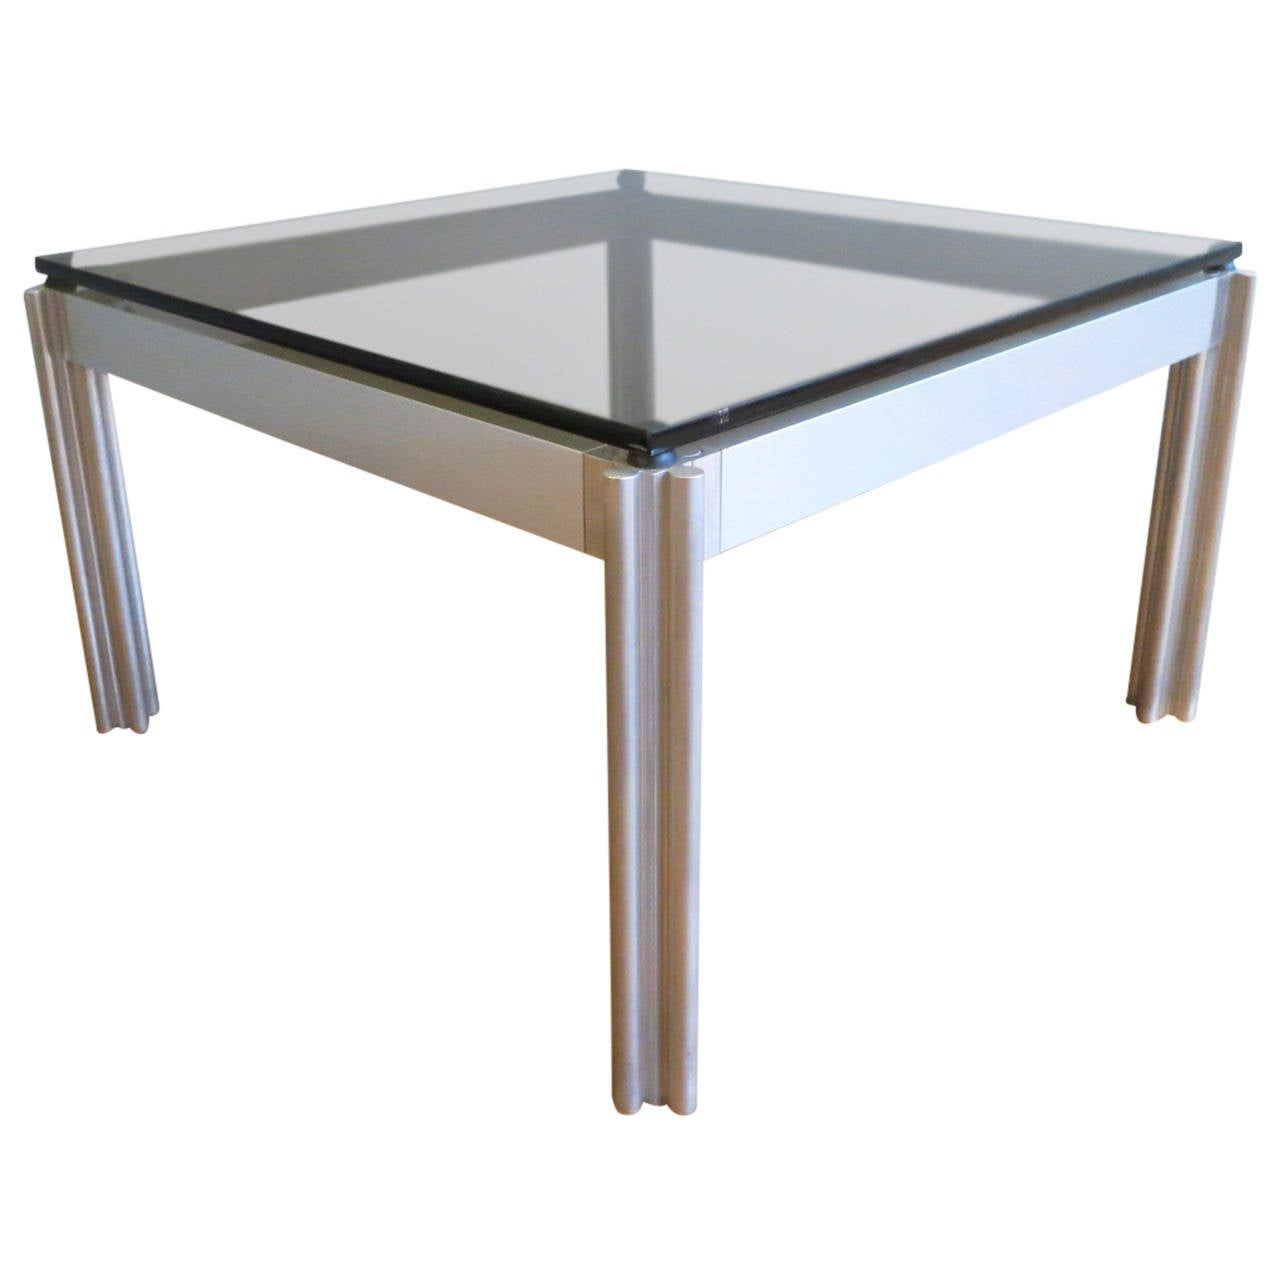 Italian Coffee Table By Ciancimino At 1stdibs